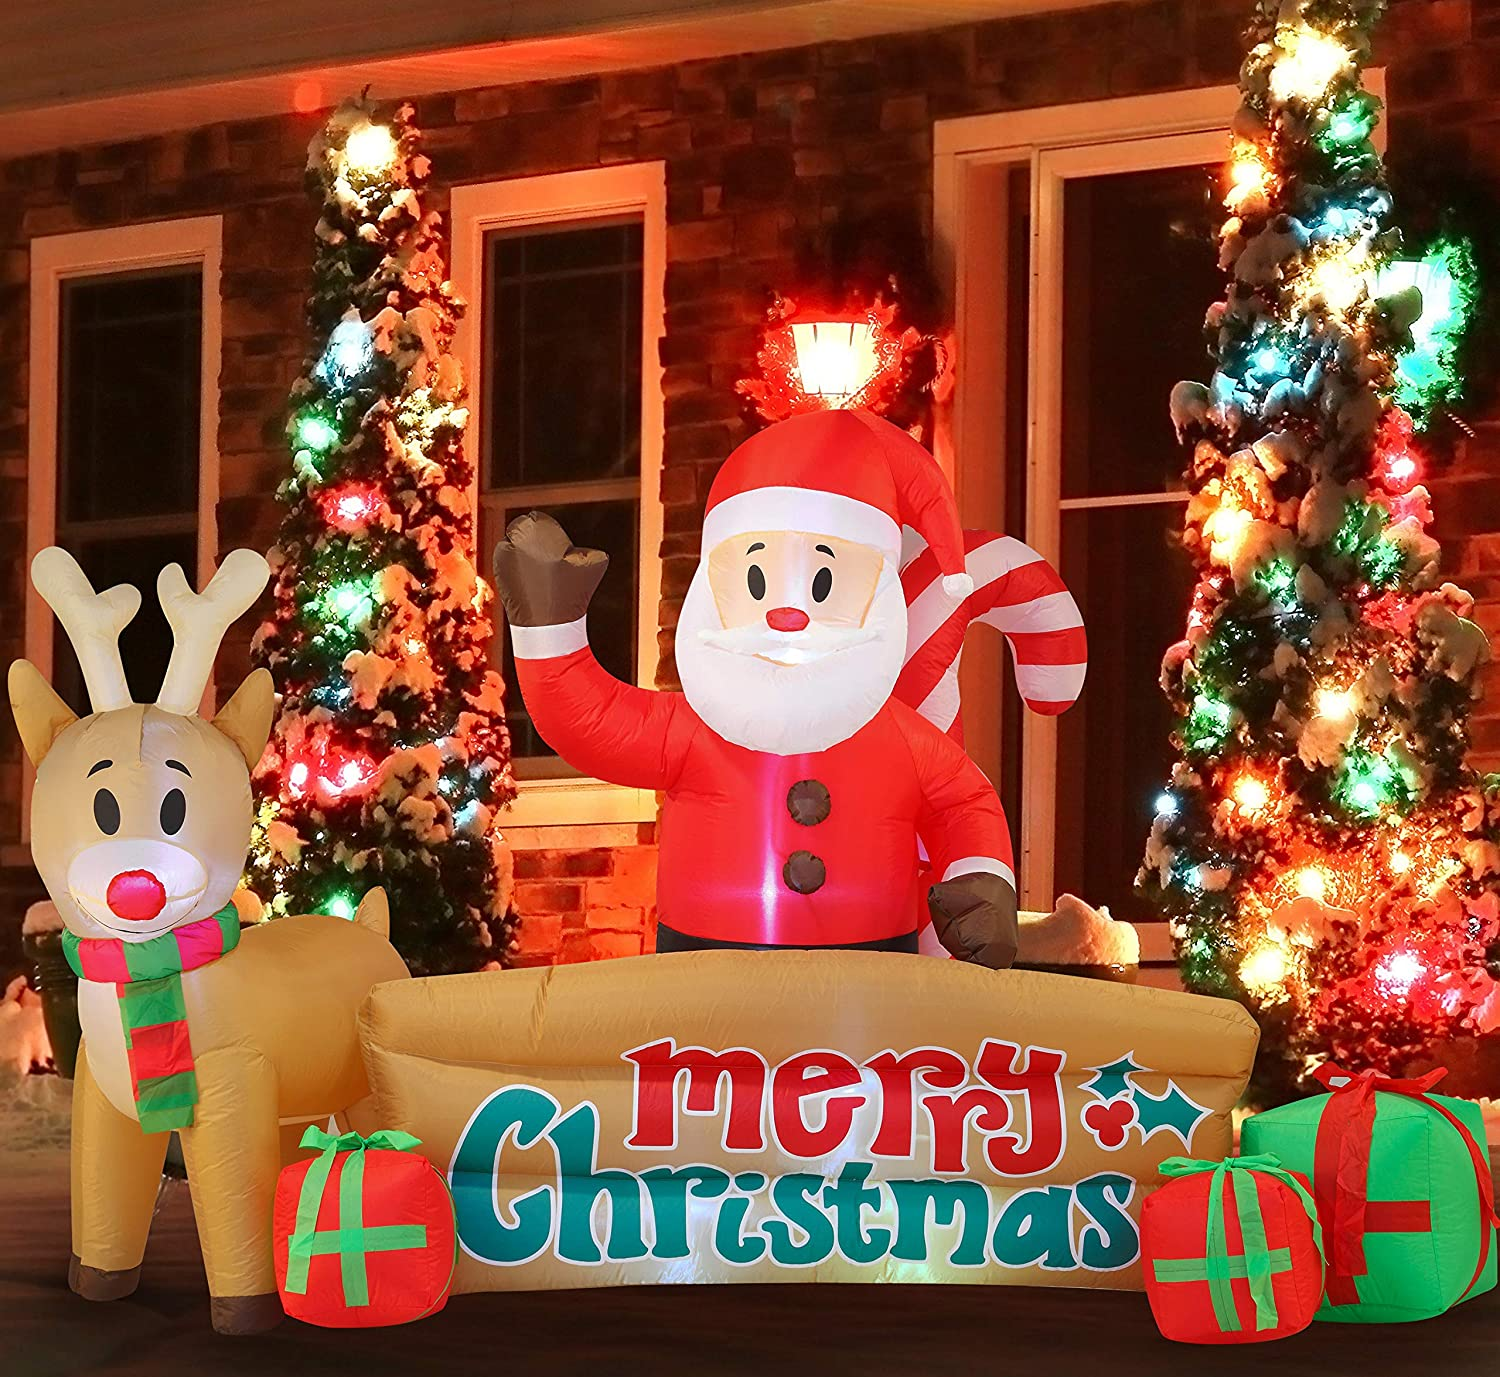 Christmas Inflatable Decoration 10 FT Xma Sante Merry Christmas Sign Inflatable with Build-in LEDs Blow Up for Indoor Outdoor Yard Garden Party Lawn Winter Decor.